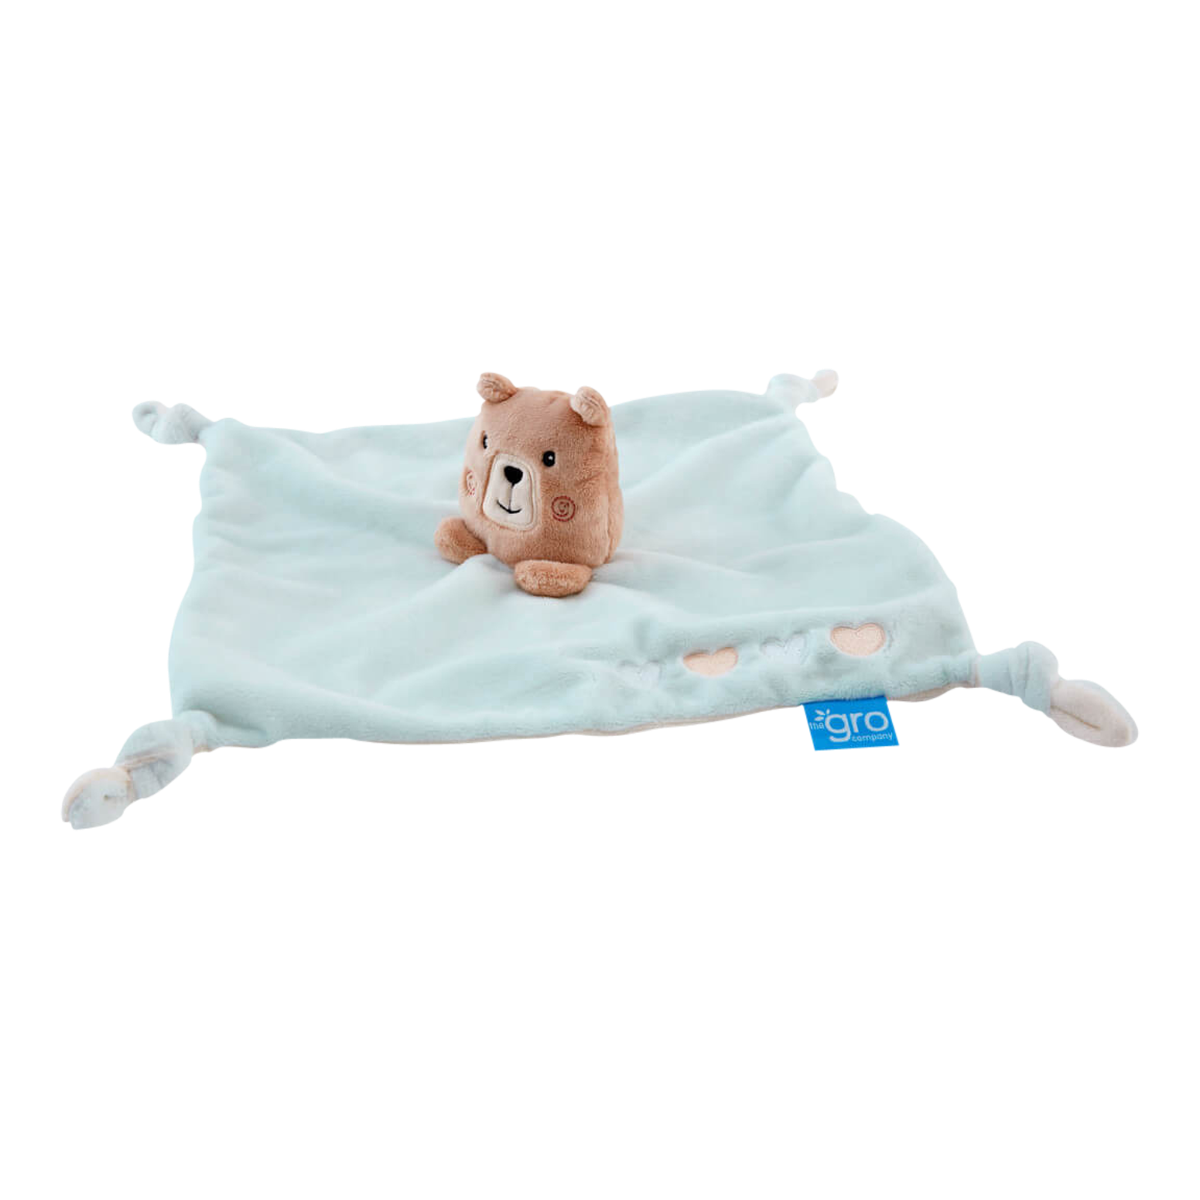 bennie-the-bear-comforter-flat